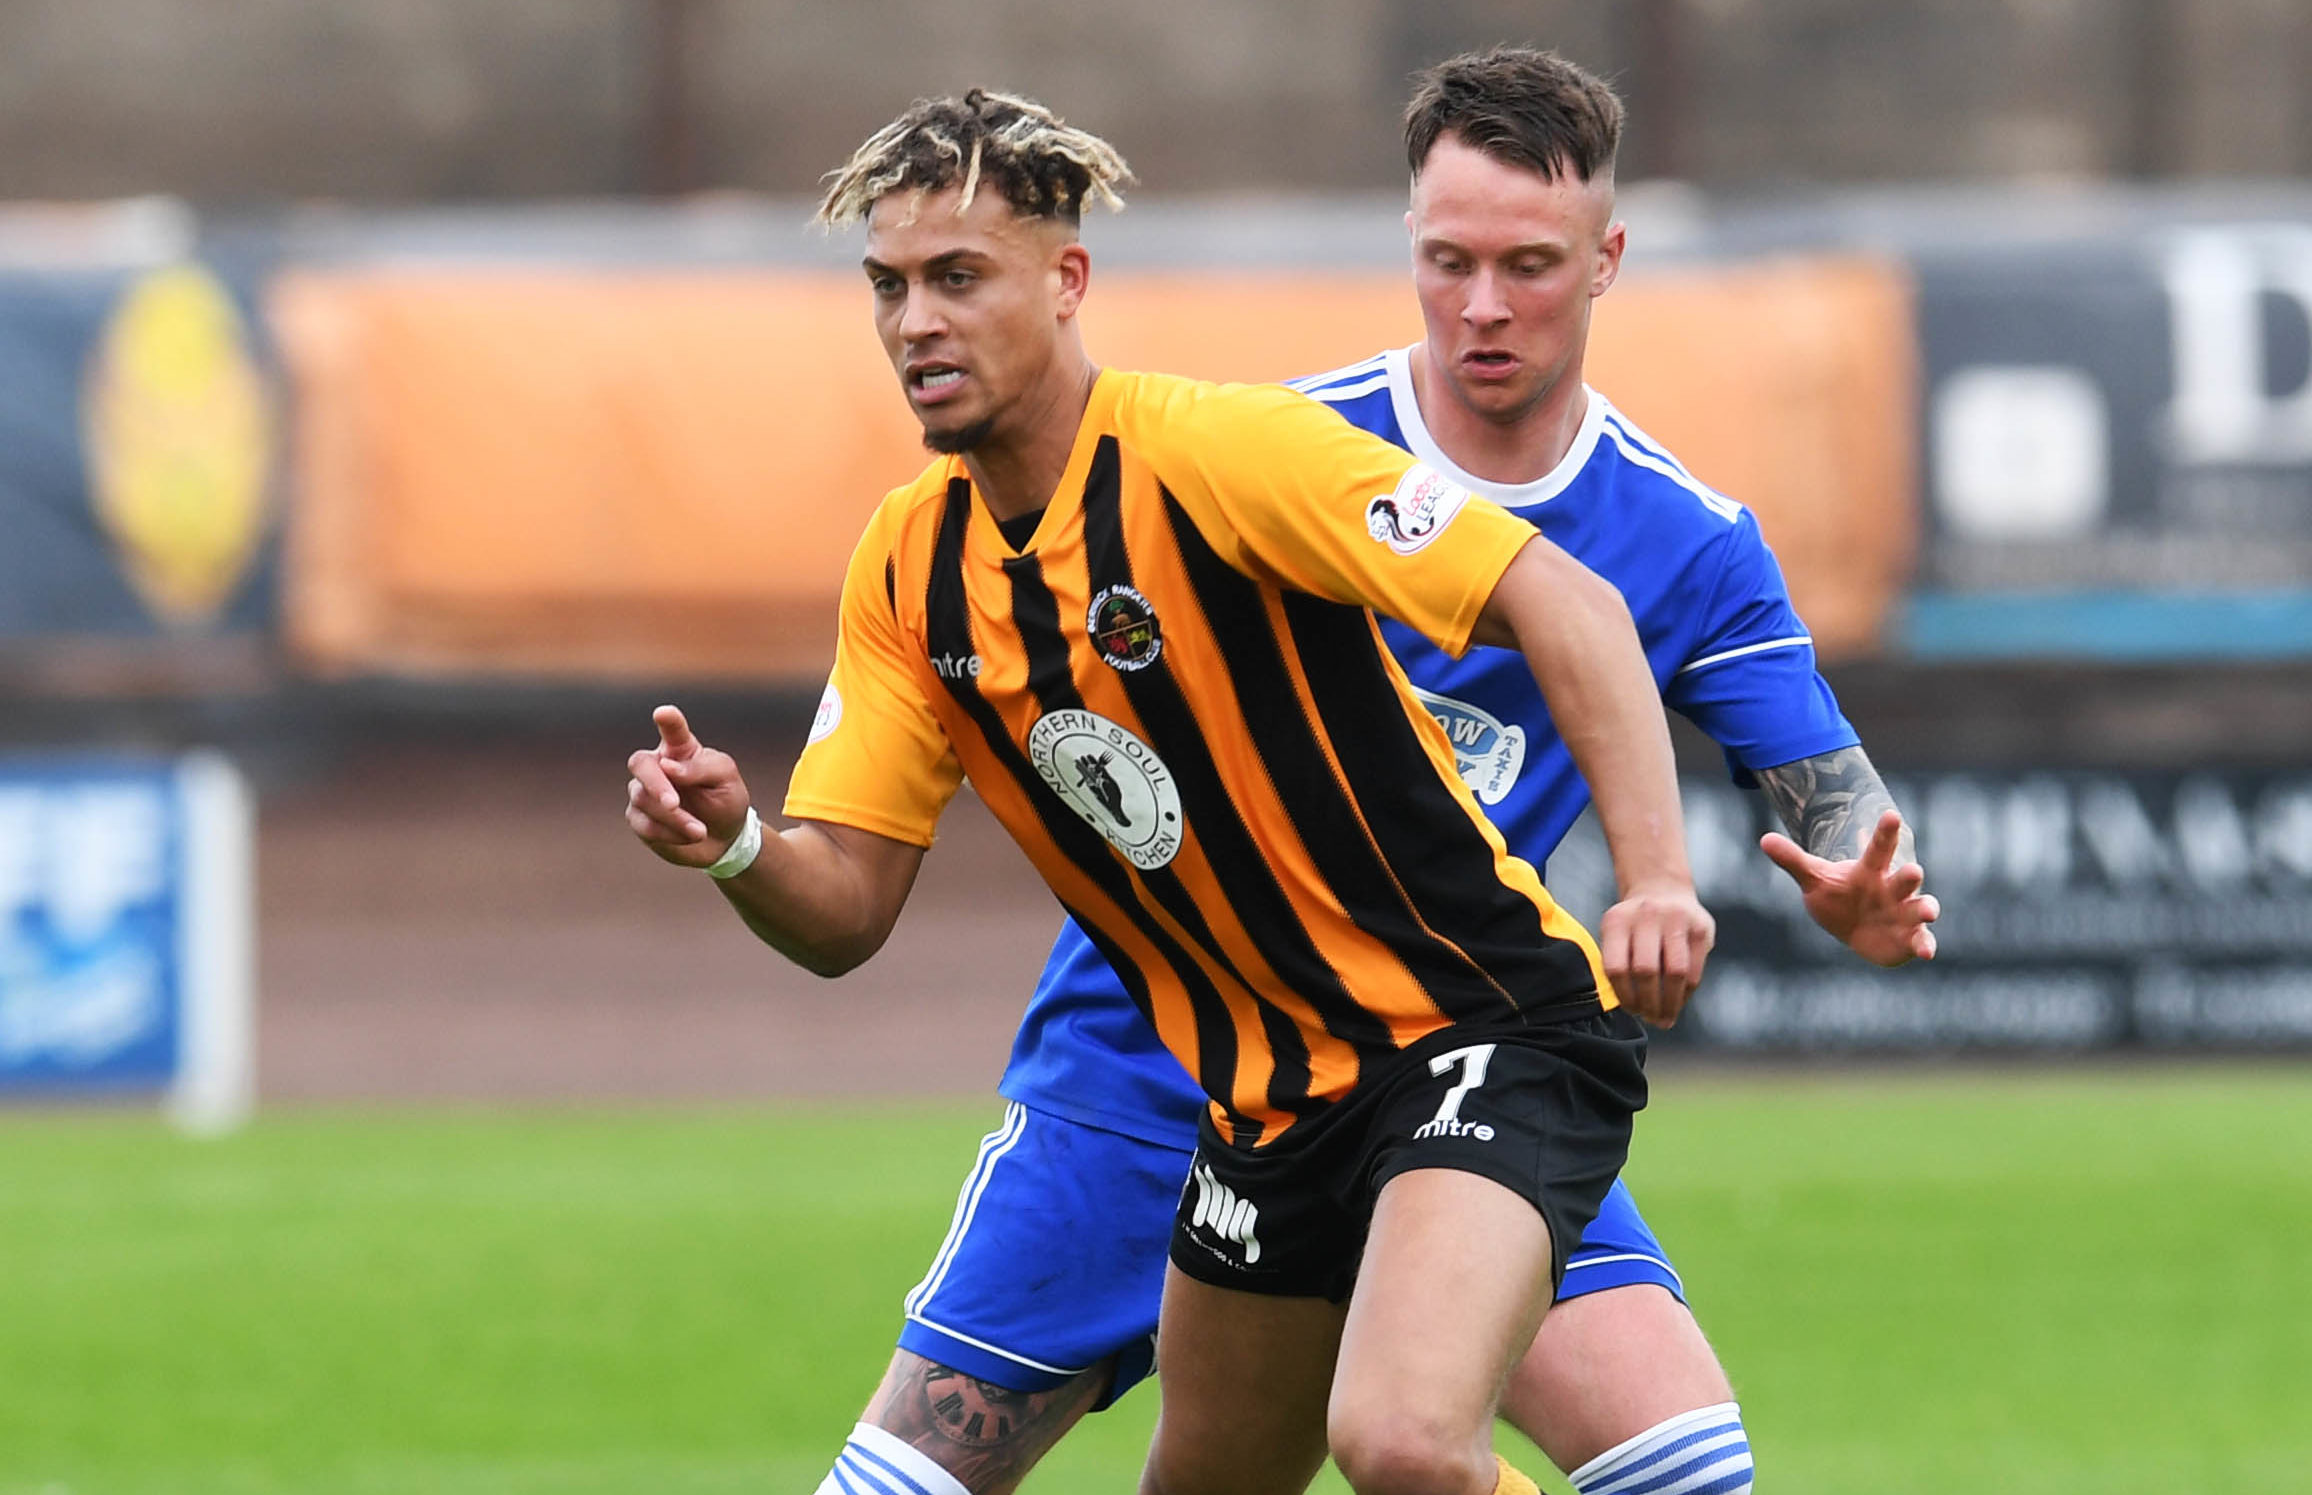 Cove Rangers beat Berwick over two legs for a place in League 2.